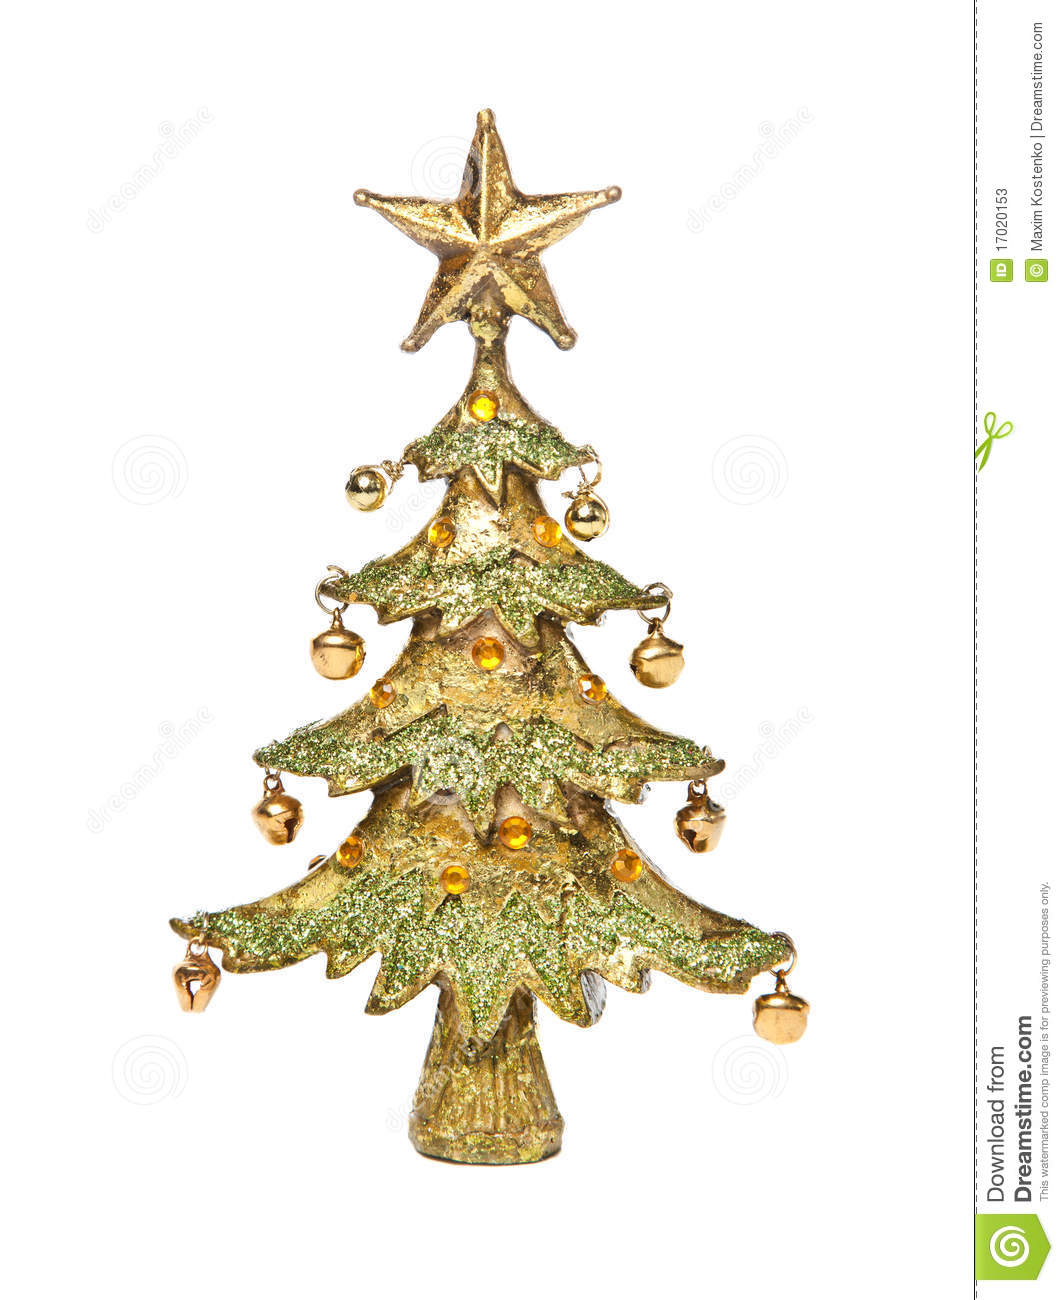 Golden Christmas-tree Stock Photos - Image: 17020153